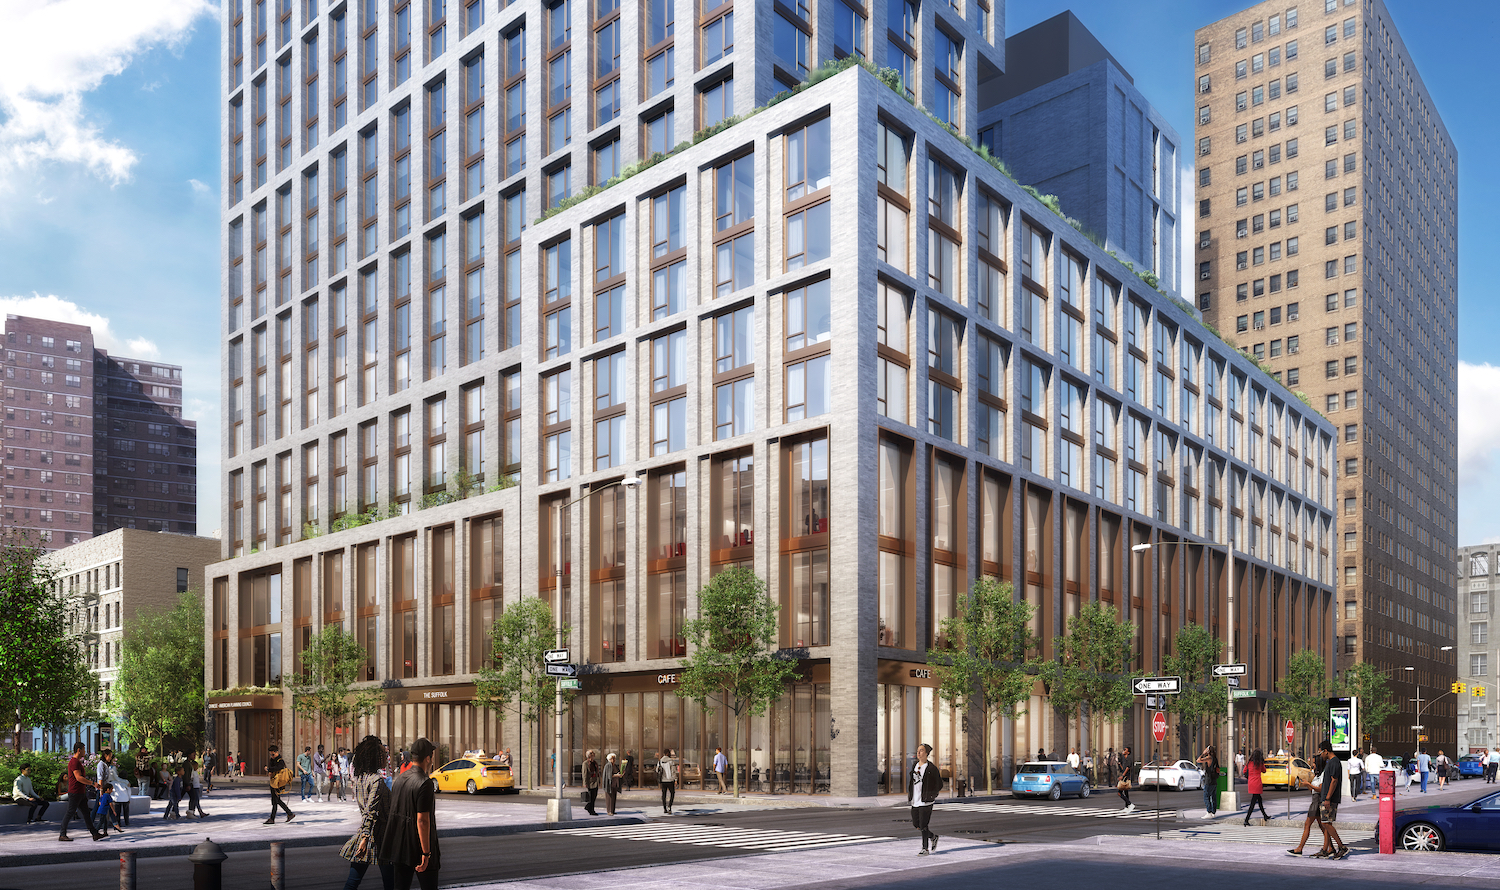 Rendering of Street View for Broome Street Development